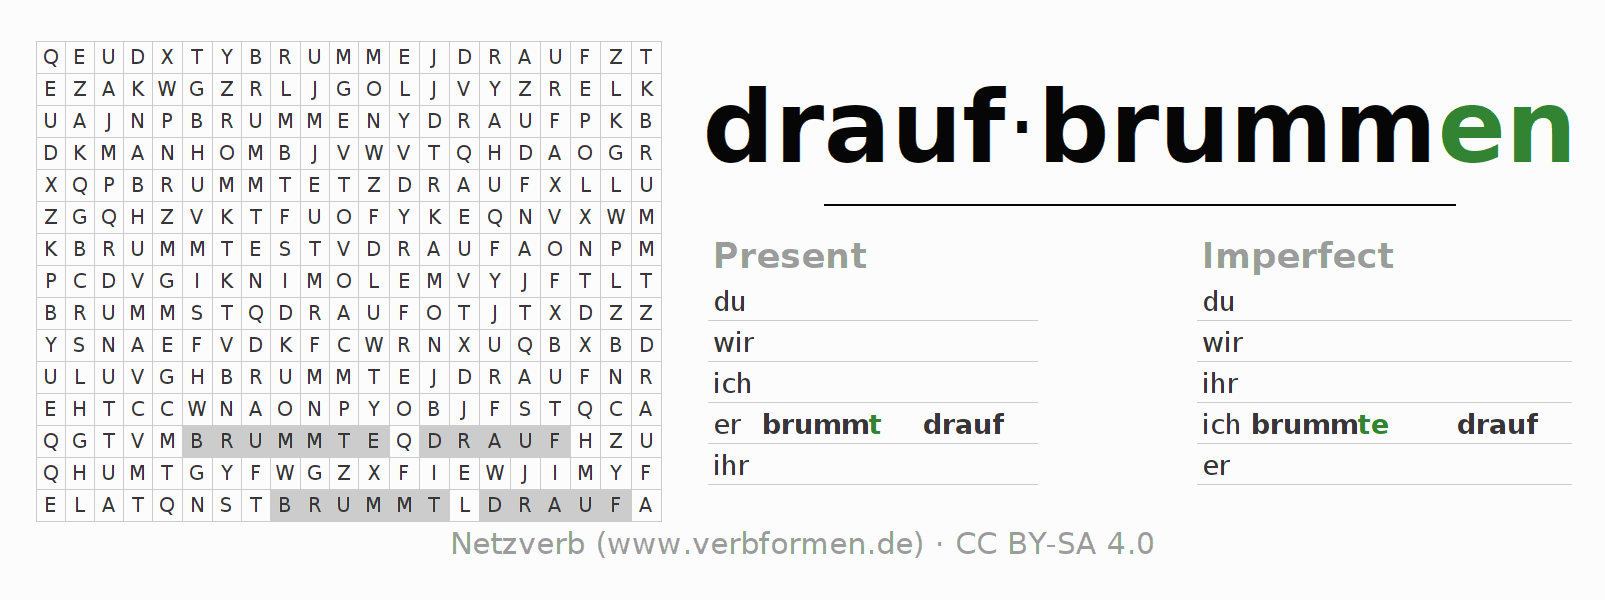 Word search puzzle for the conjugation of the verb draufbrummen